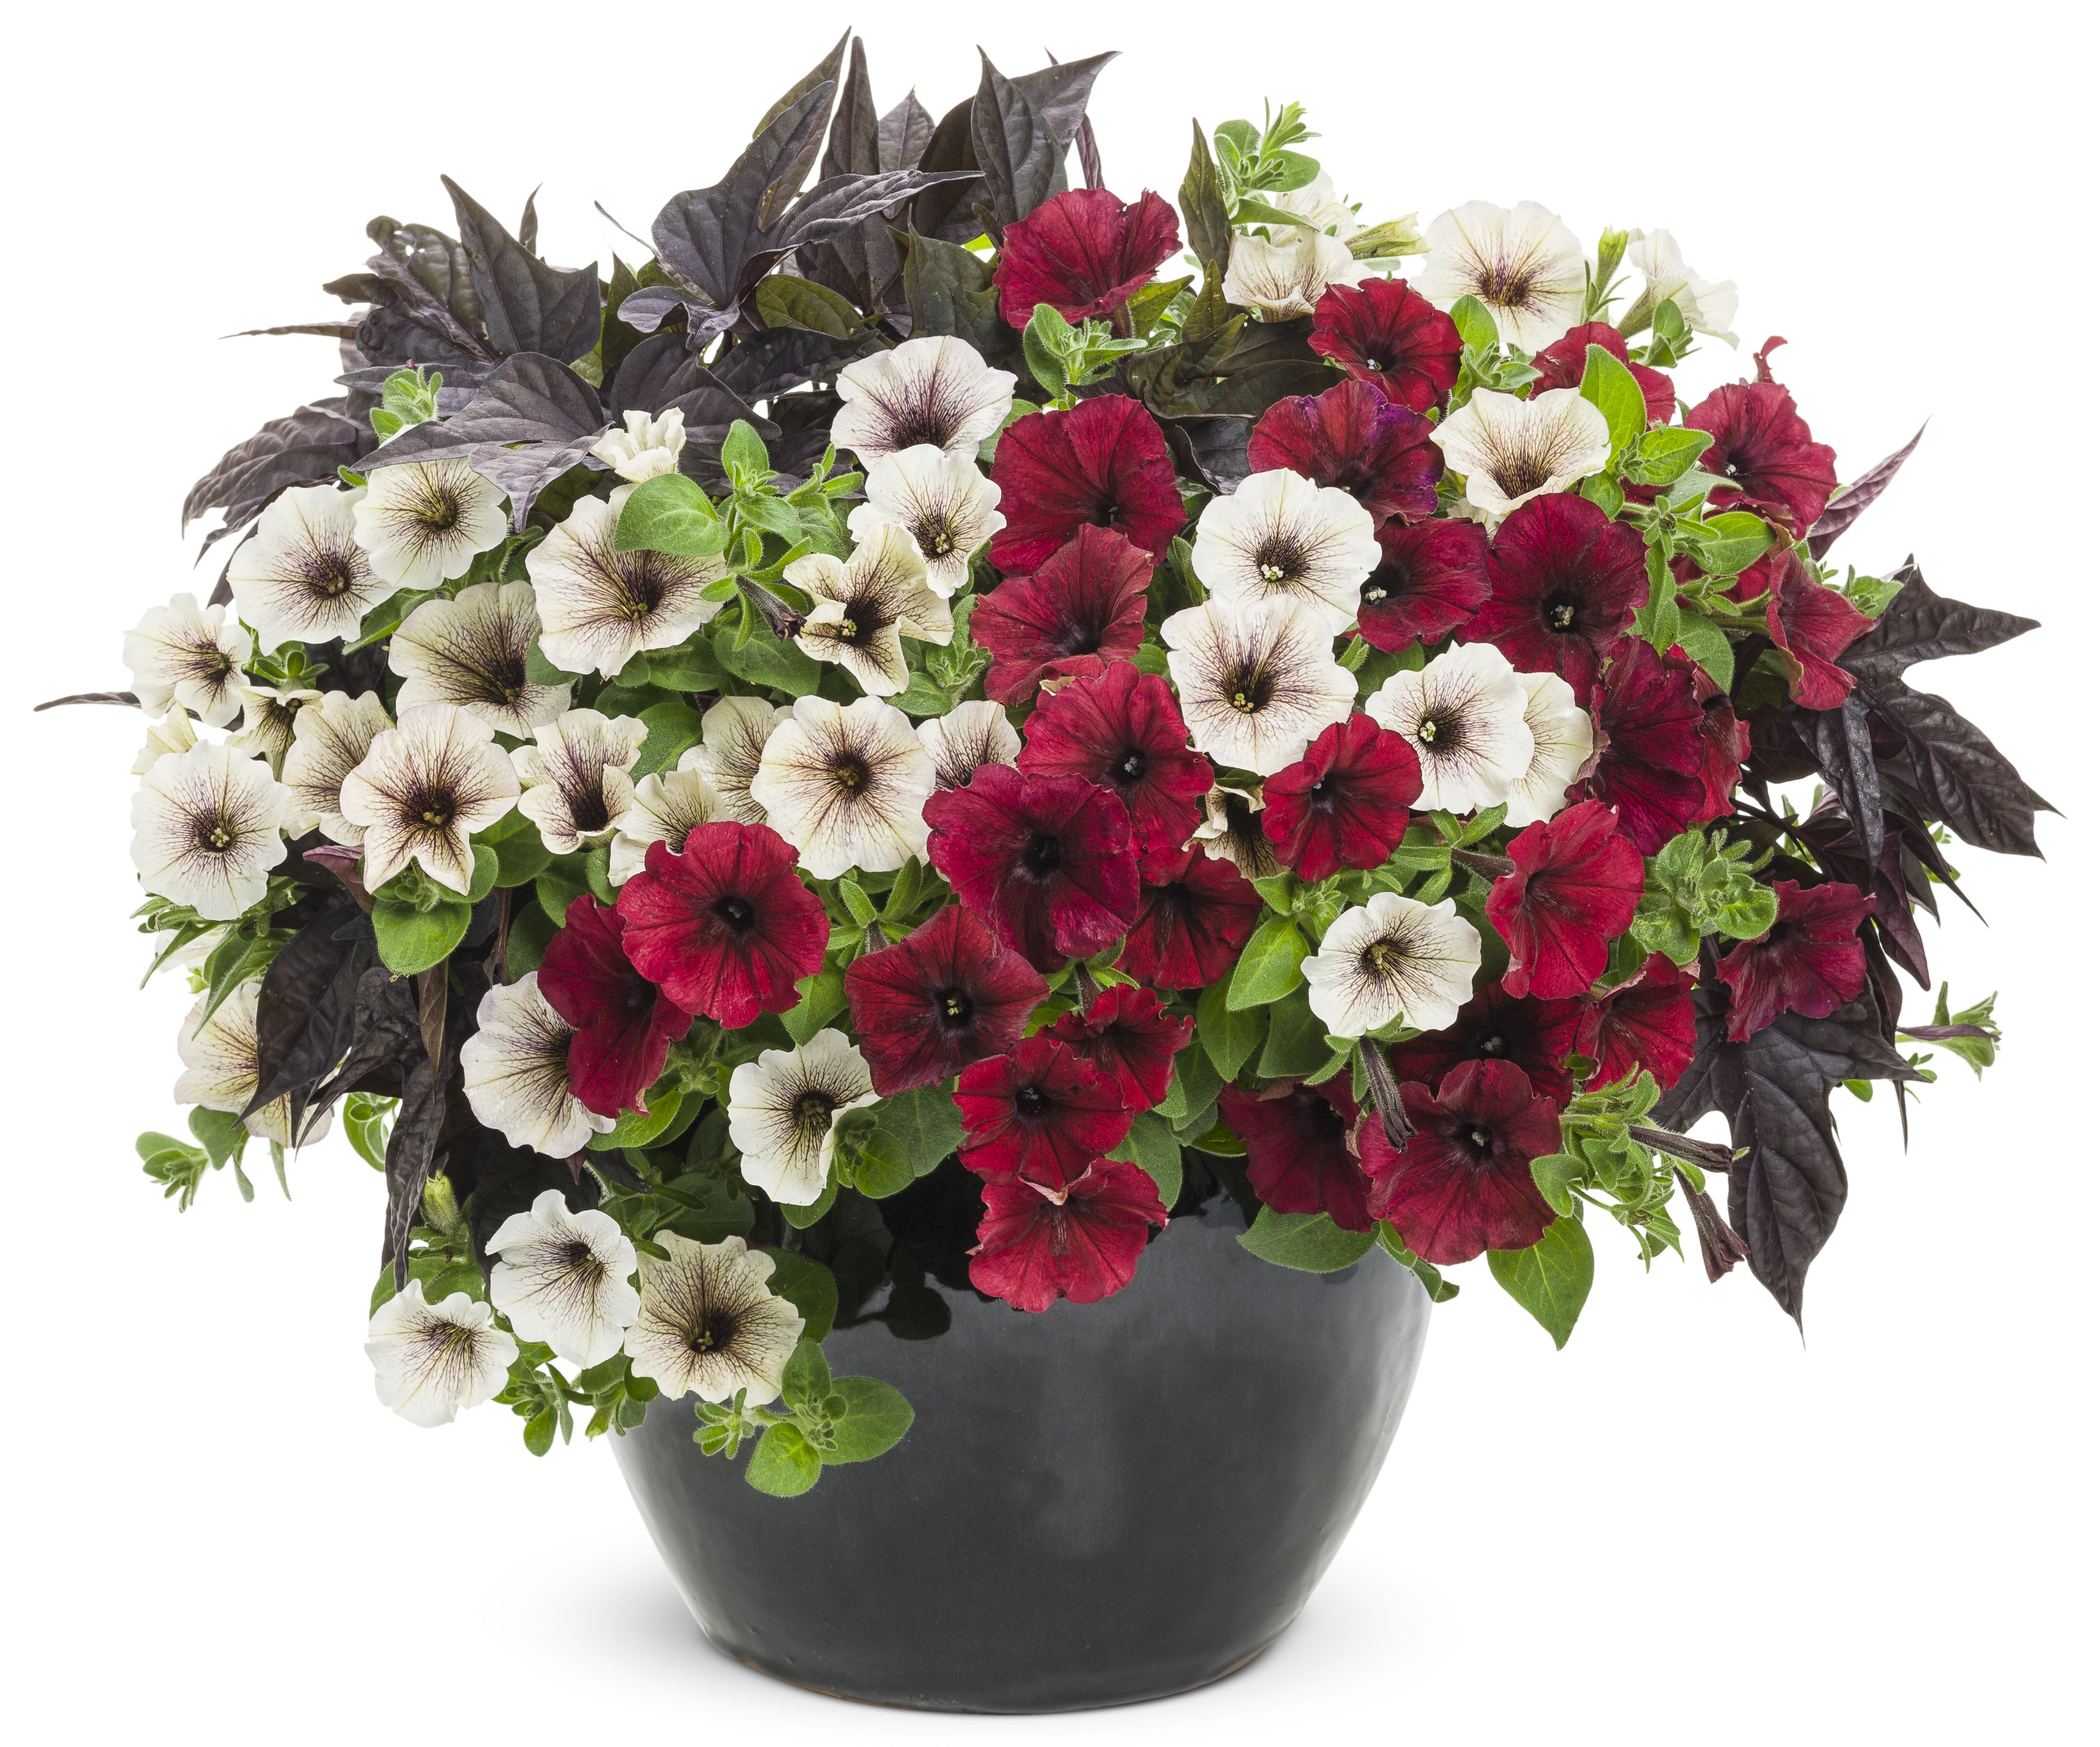 Red Velvet Cake Is A New Container Combination That Puts Supertunia Black Cherry To Work Great Color And Contrast For A Container Flowers Flower Pots Plants